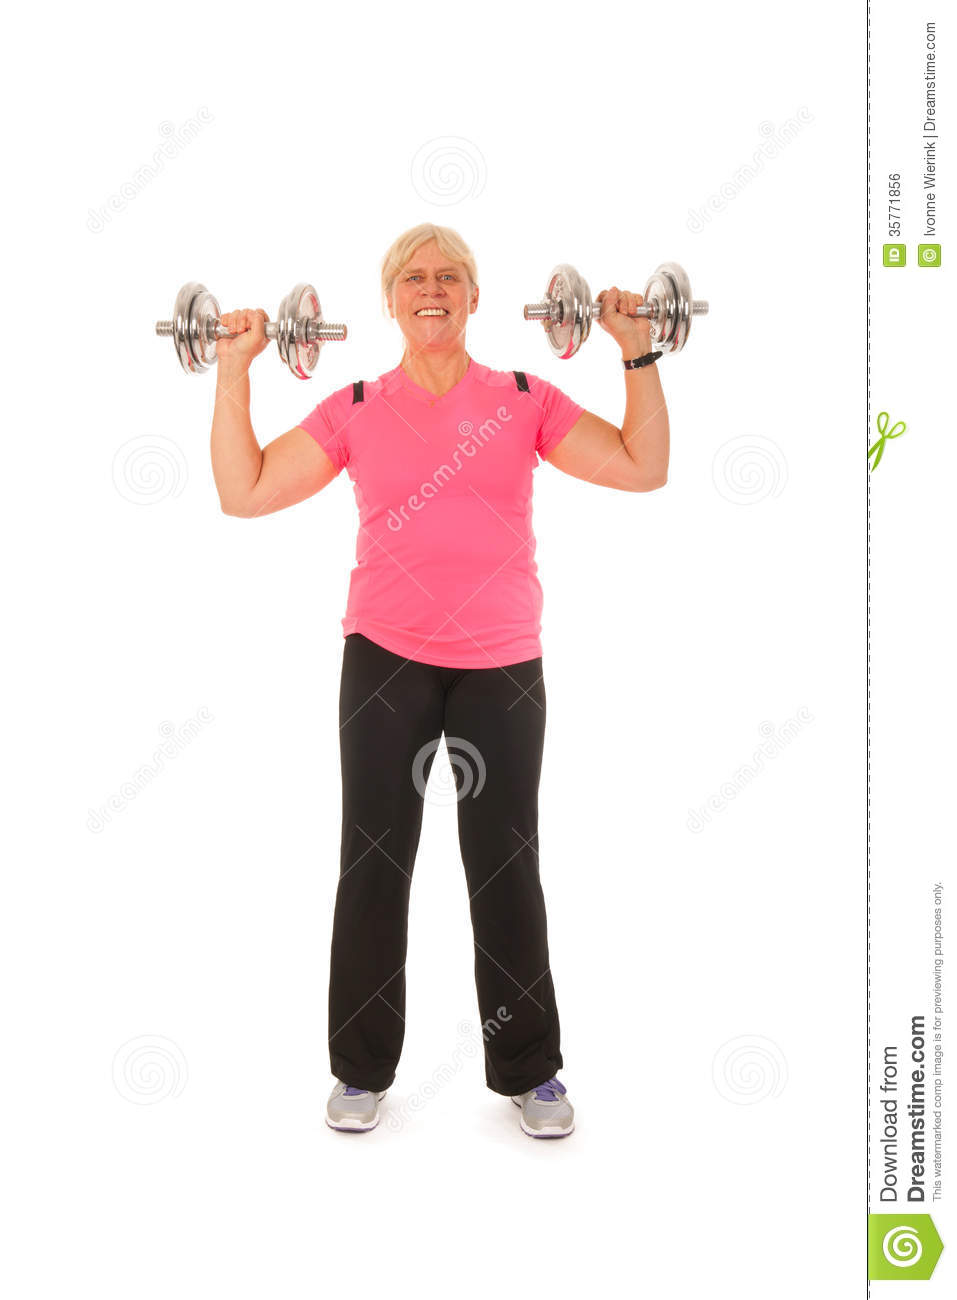 Woman Of Mature Age Lifting Dumbbels Stock Photo Image Of Heavy